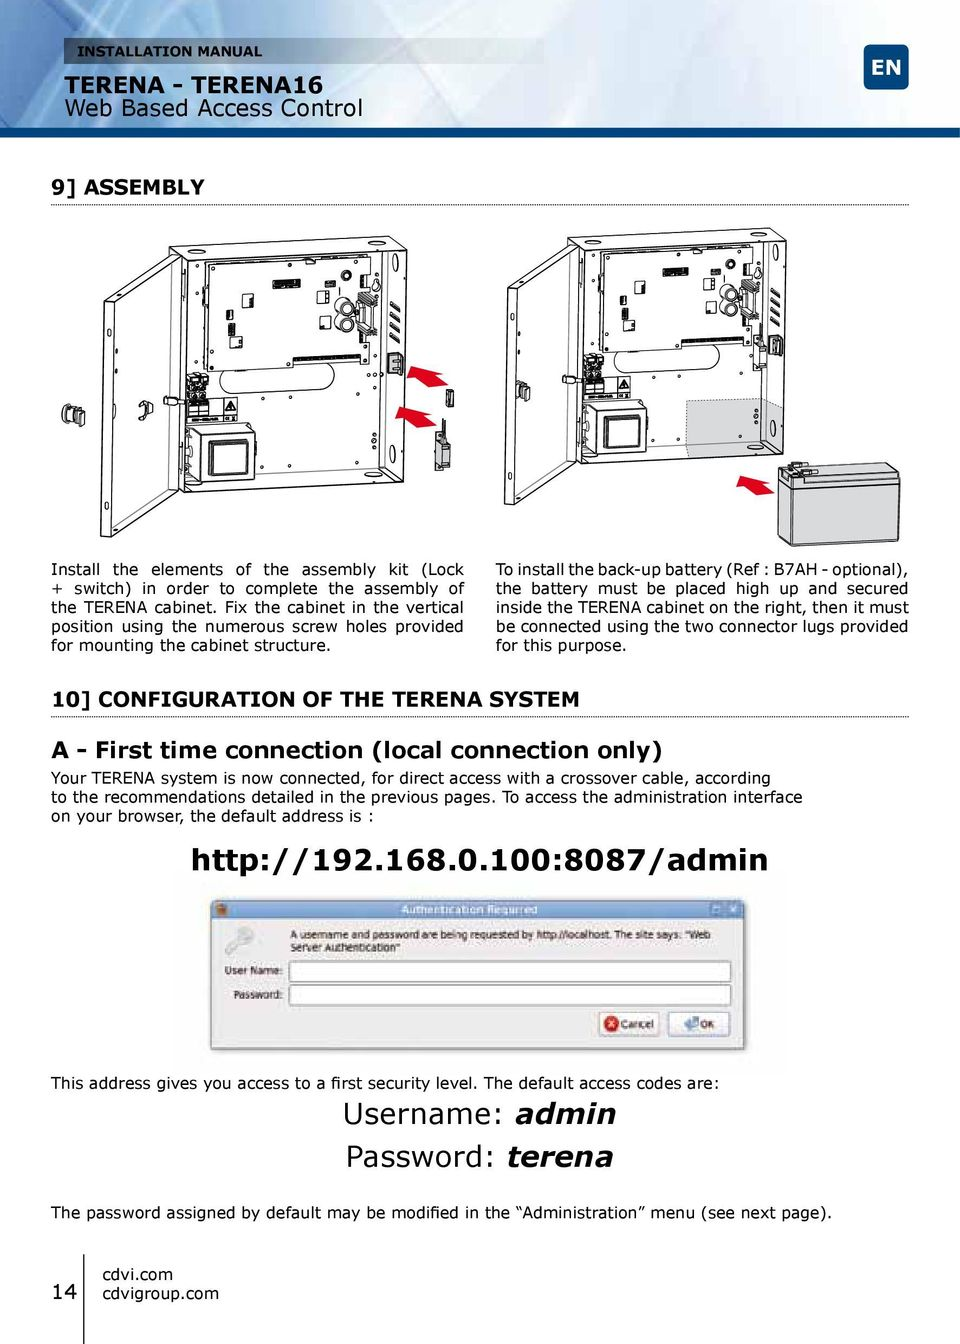 To install the back-up battery (Ref : B7AH - optional), the battery must be placed high up and secured inside the TERENA cabinet on the right, then it must be connected using the two connector lugs